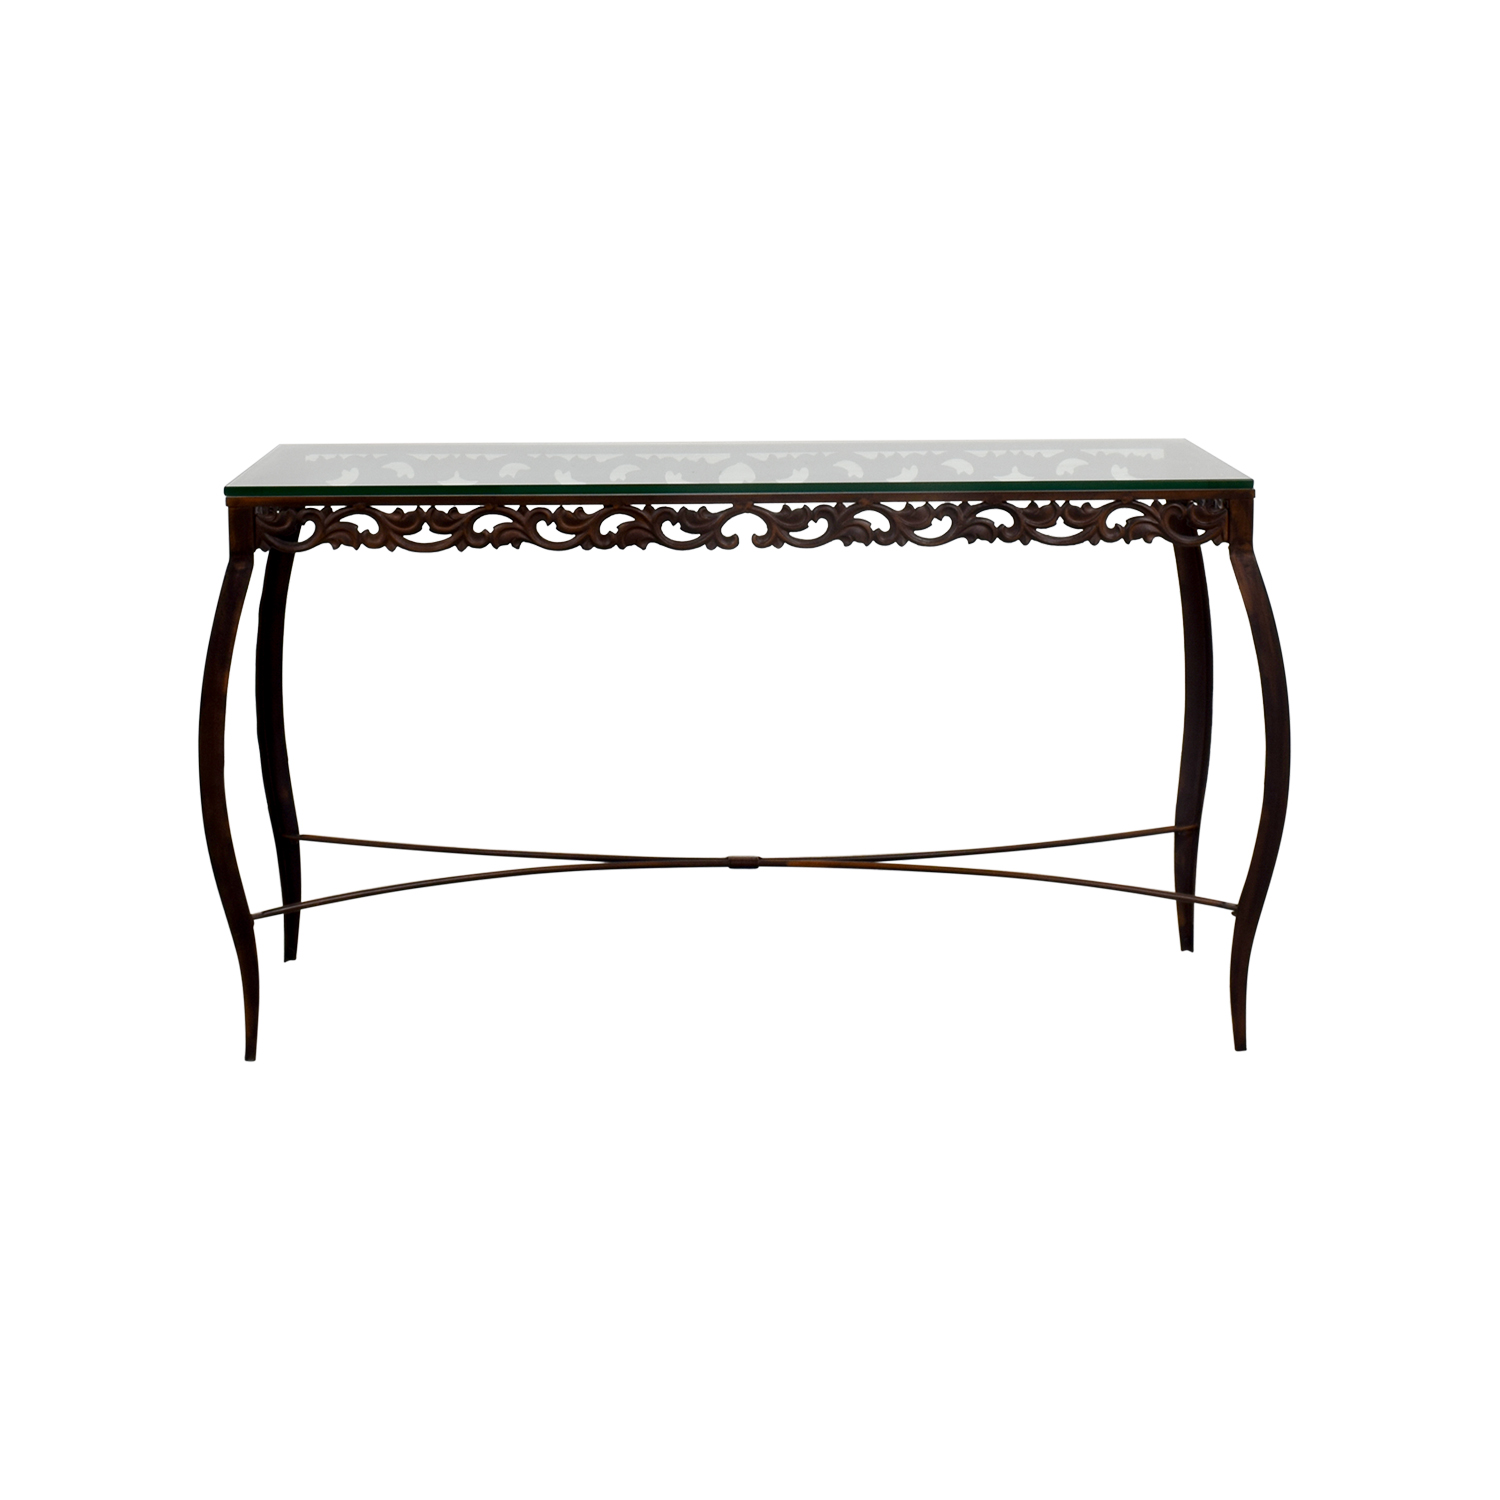 Pier 1 Imports Glass Console Table sale